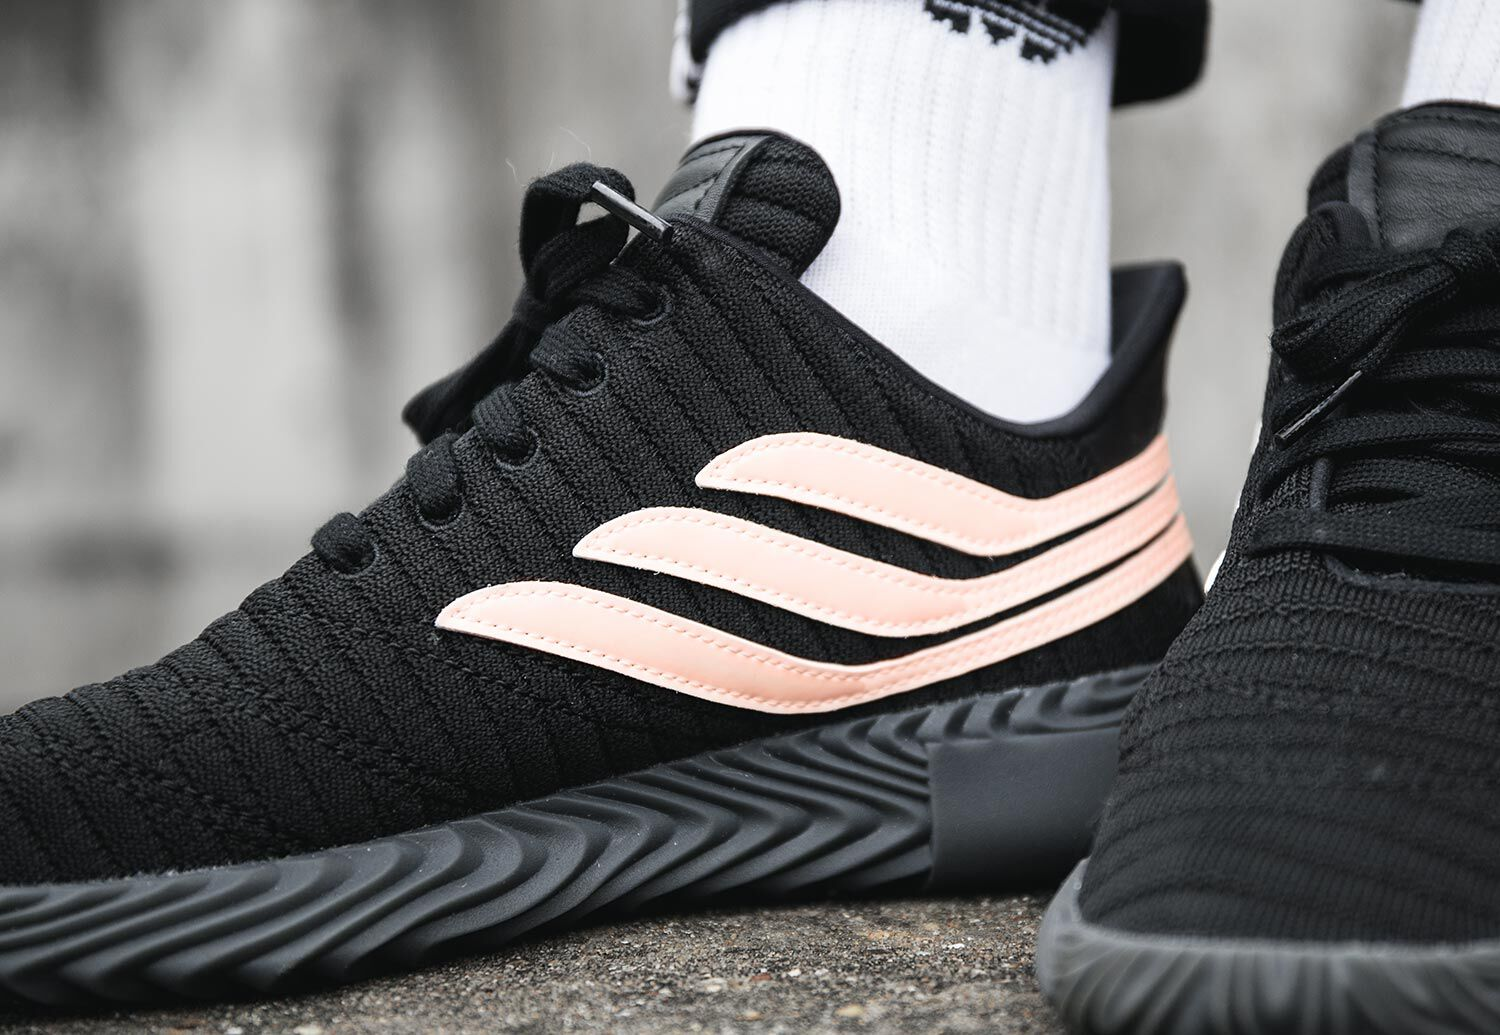 adidas Sobakov - Sneakers Low at Stylefile